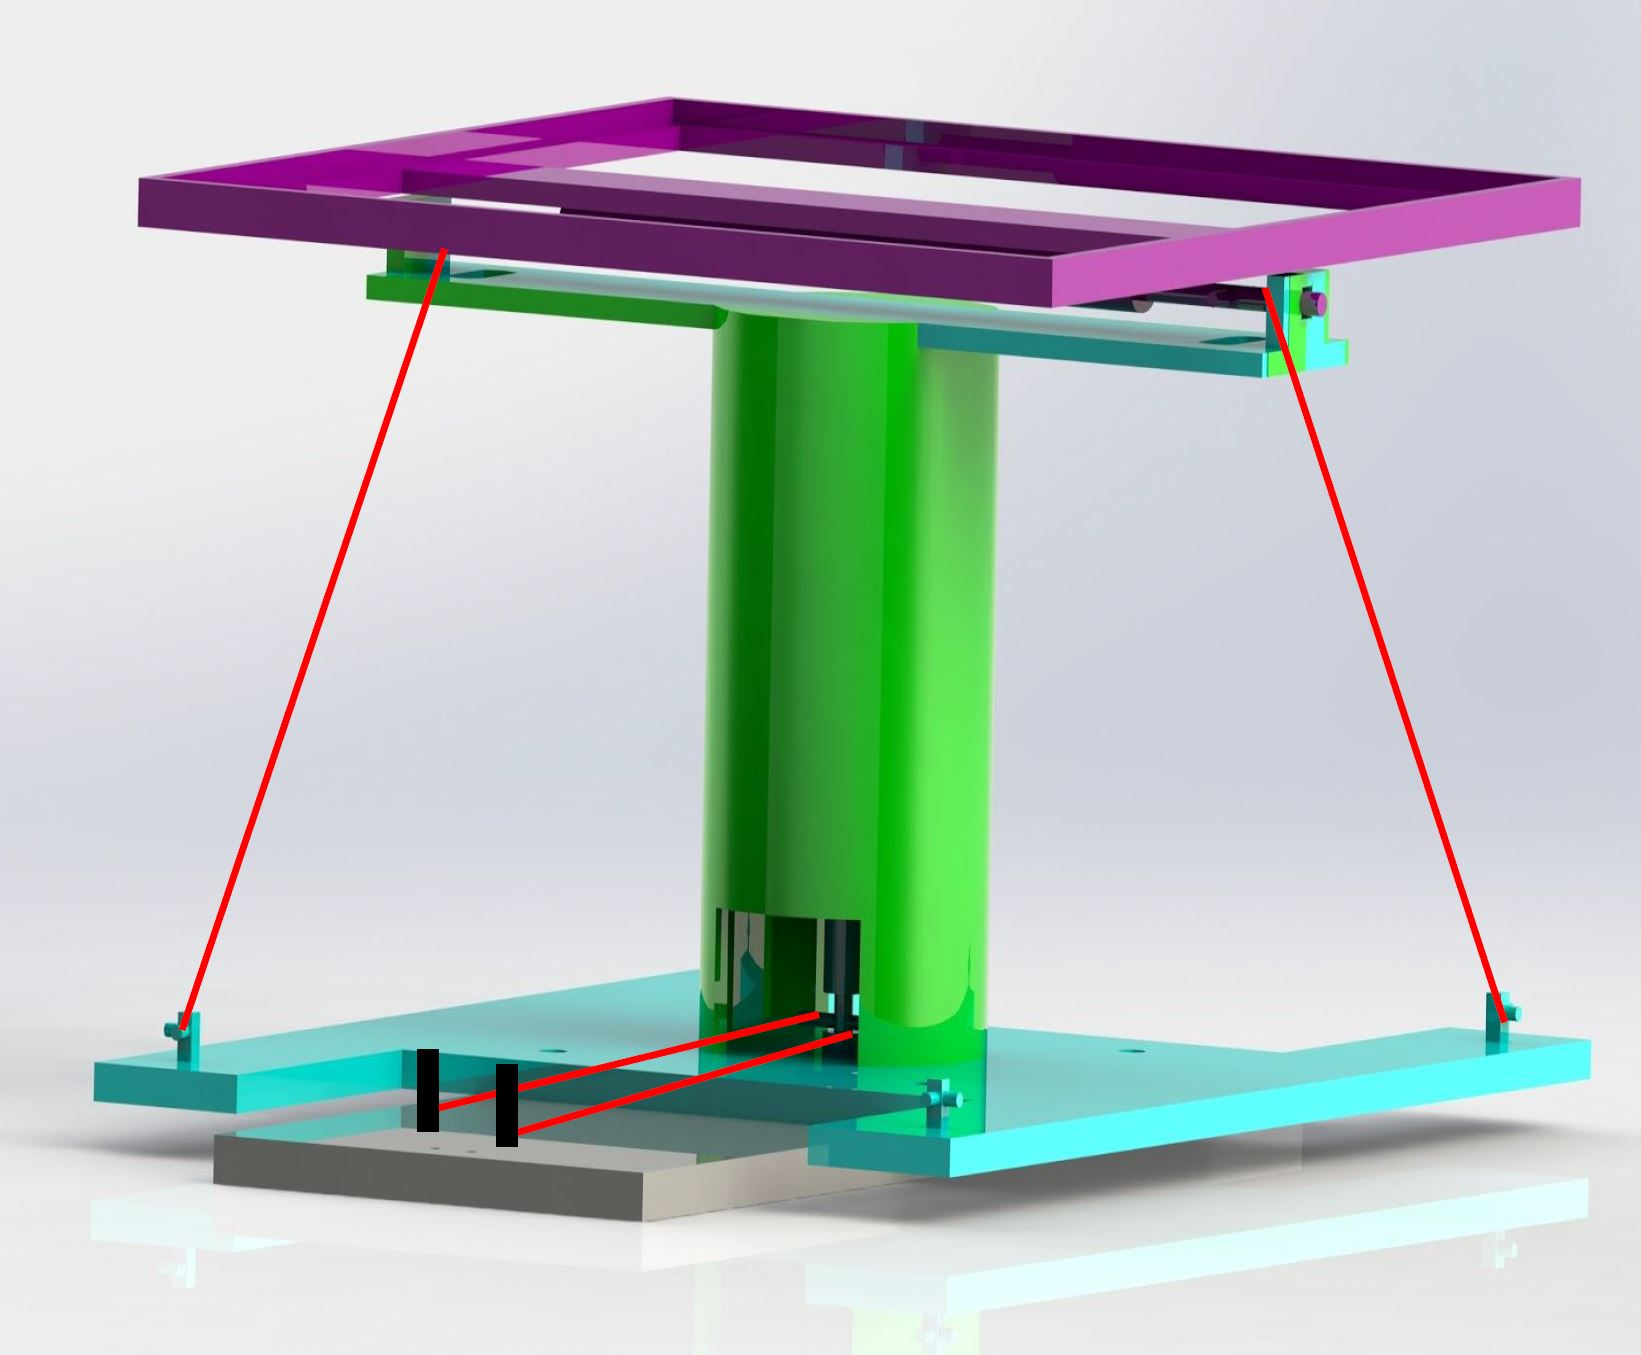 Tip-Tilt Mechanism CAD Render. The red lines represent the SMA wires.